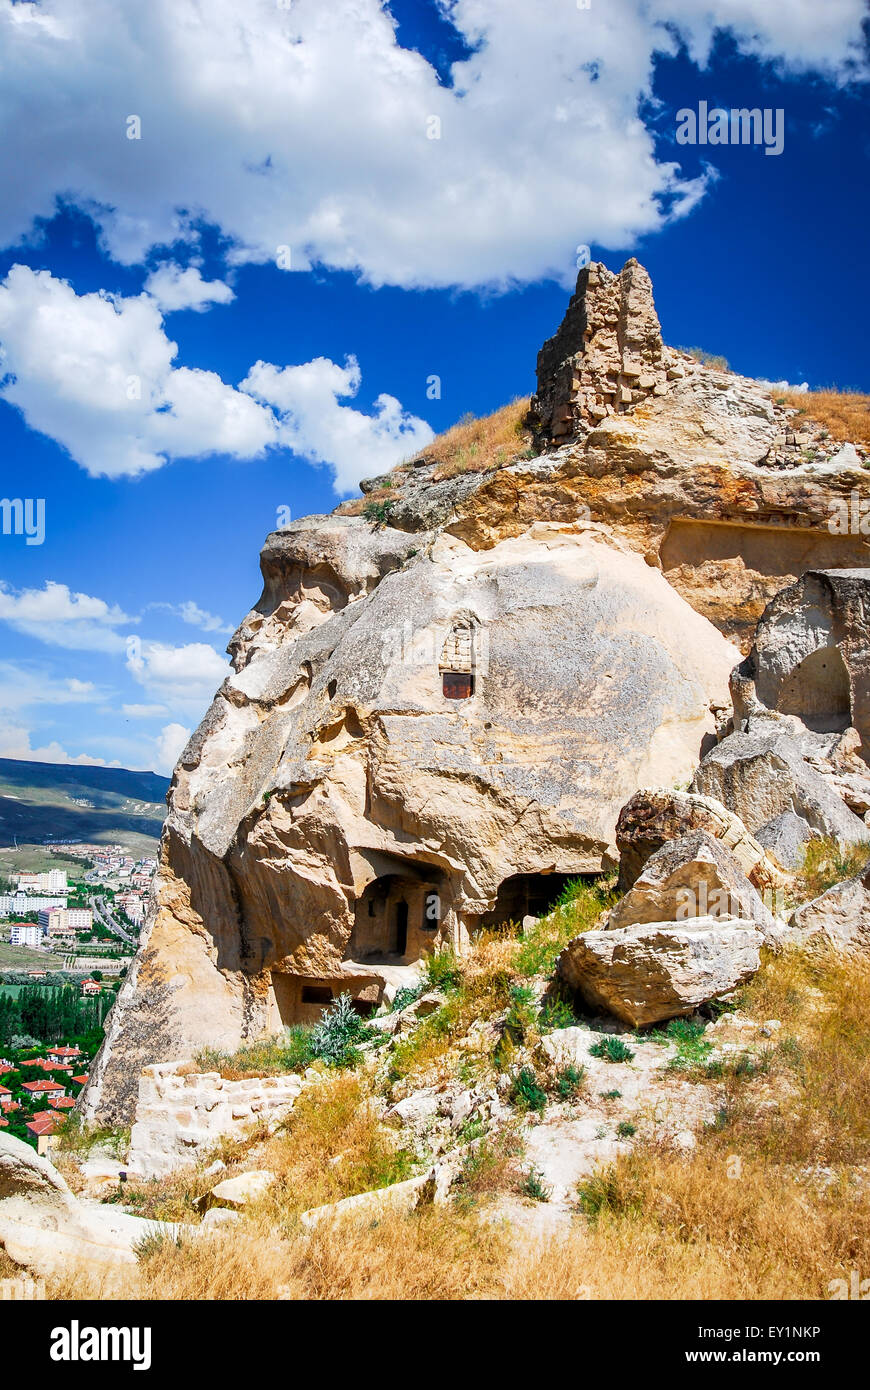 Turkey, Urgup. Multi-storey 'home' of the cave town, in the historical region of Cappadocia, Central Anatolia - Stock Image